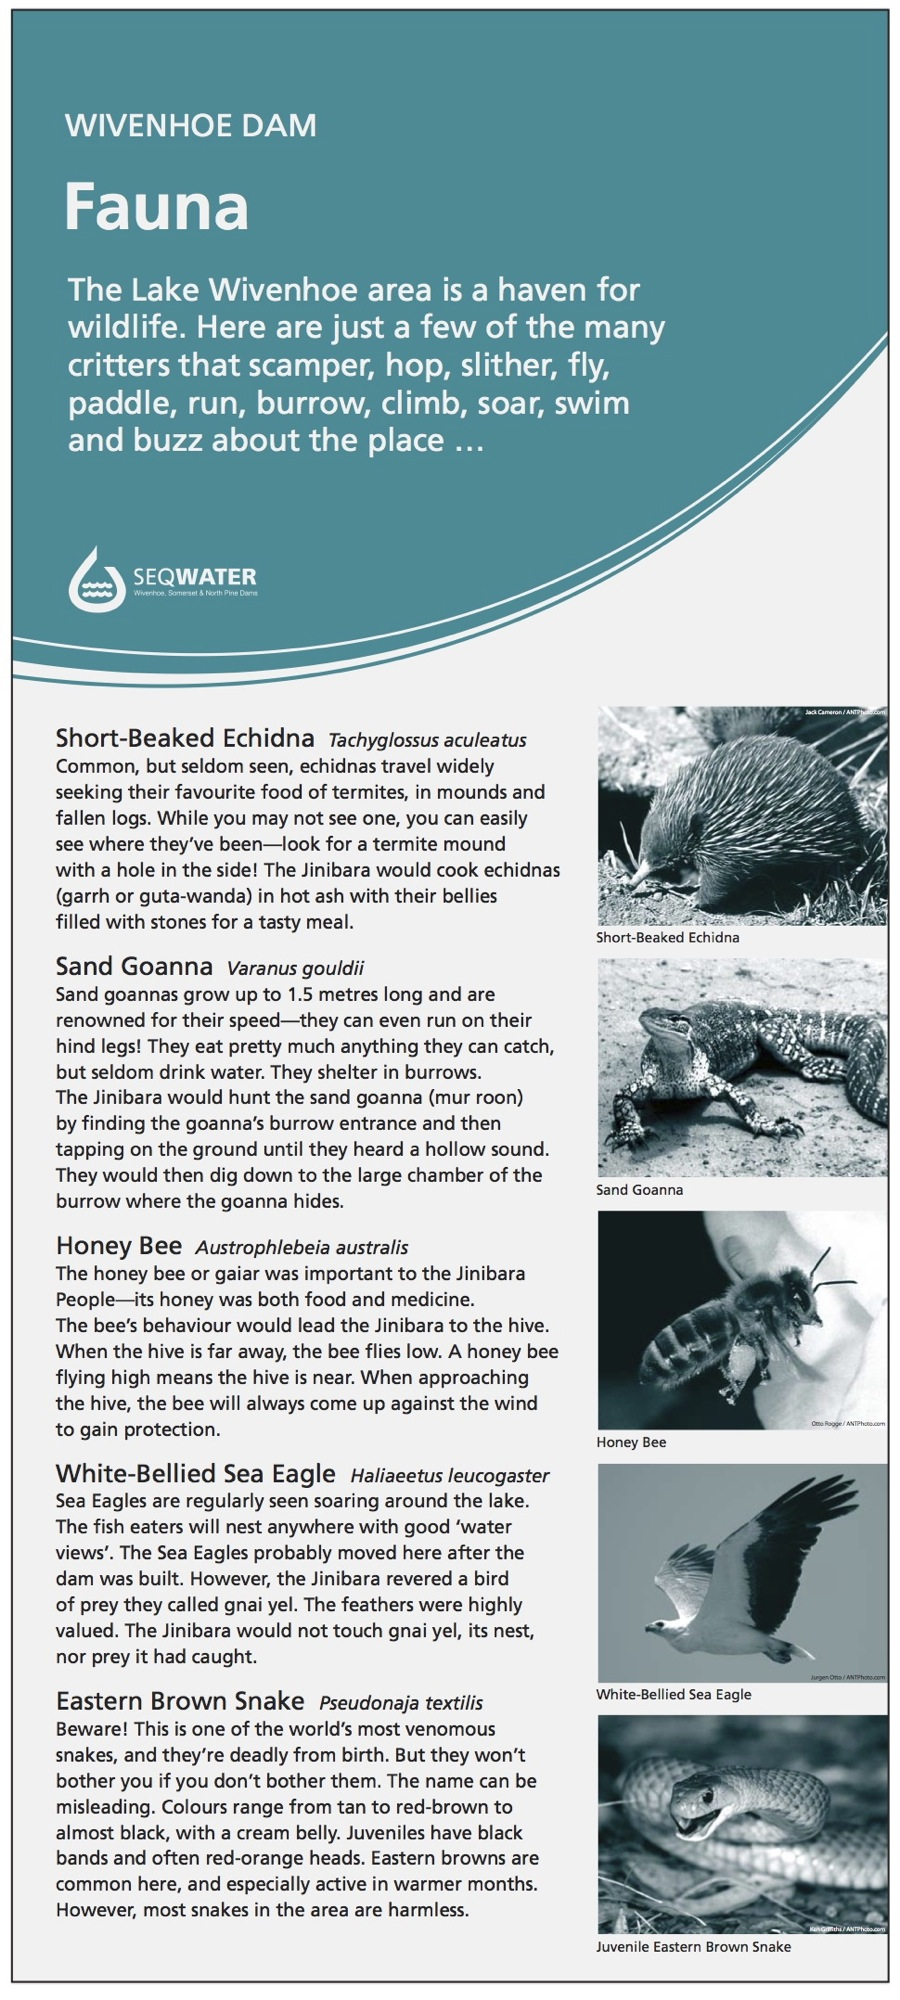 Wivenhoe Dam interpretive signage - Fauna